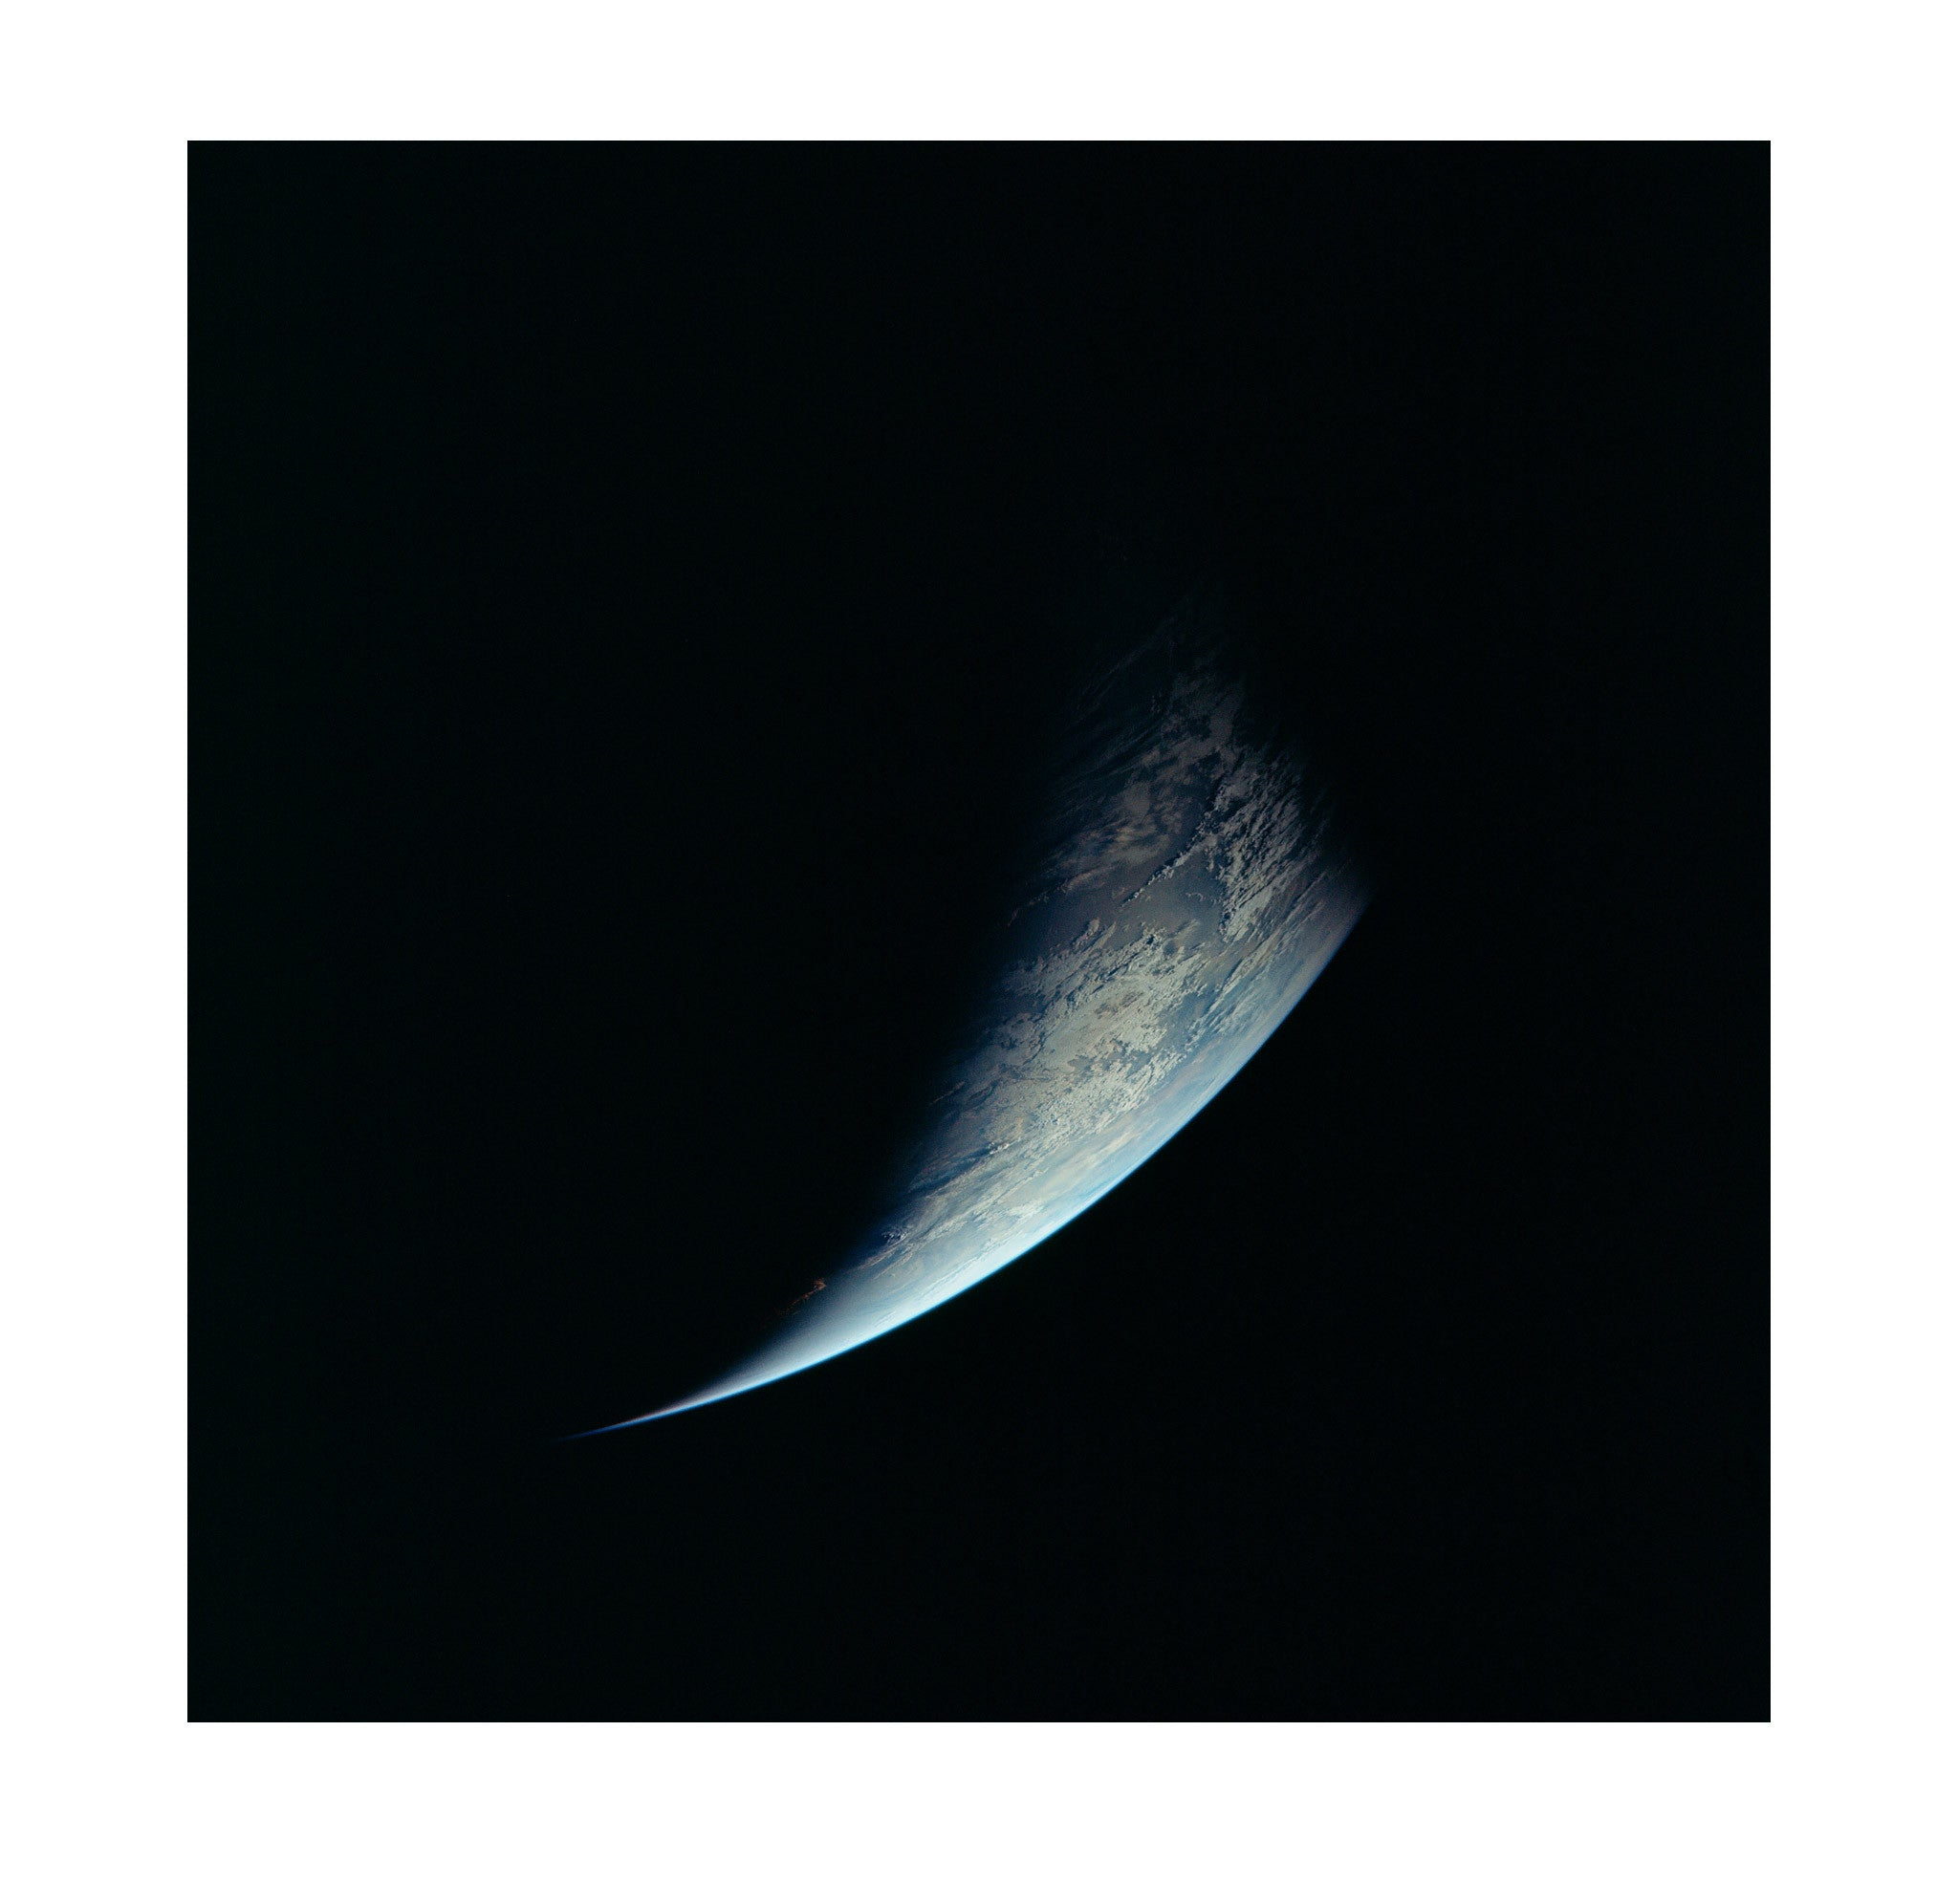 Apollo 11 – Earth 1